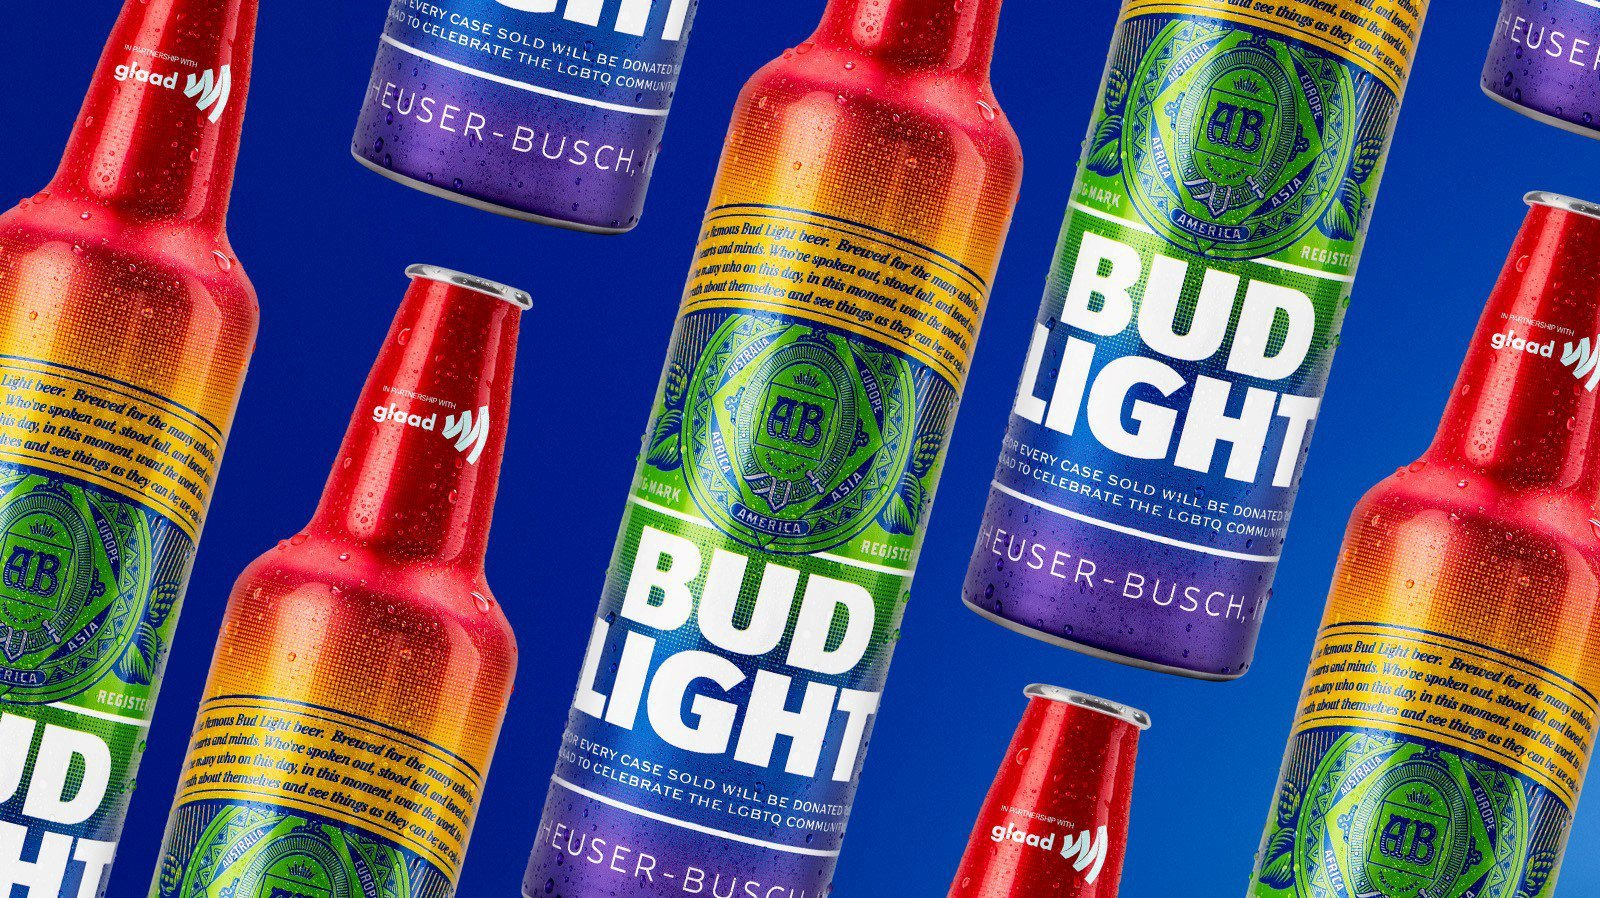 Bud Light will sell rainbow-colored aluminum bottles in bars nationwide from May 27 to June 30 and donate to GLAAD $1 from each case sold. (Credit: GLAAD)